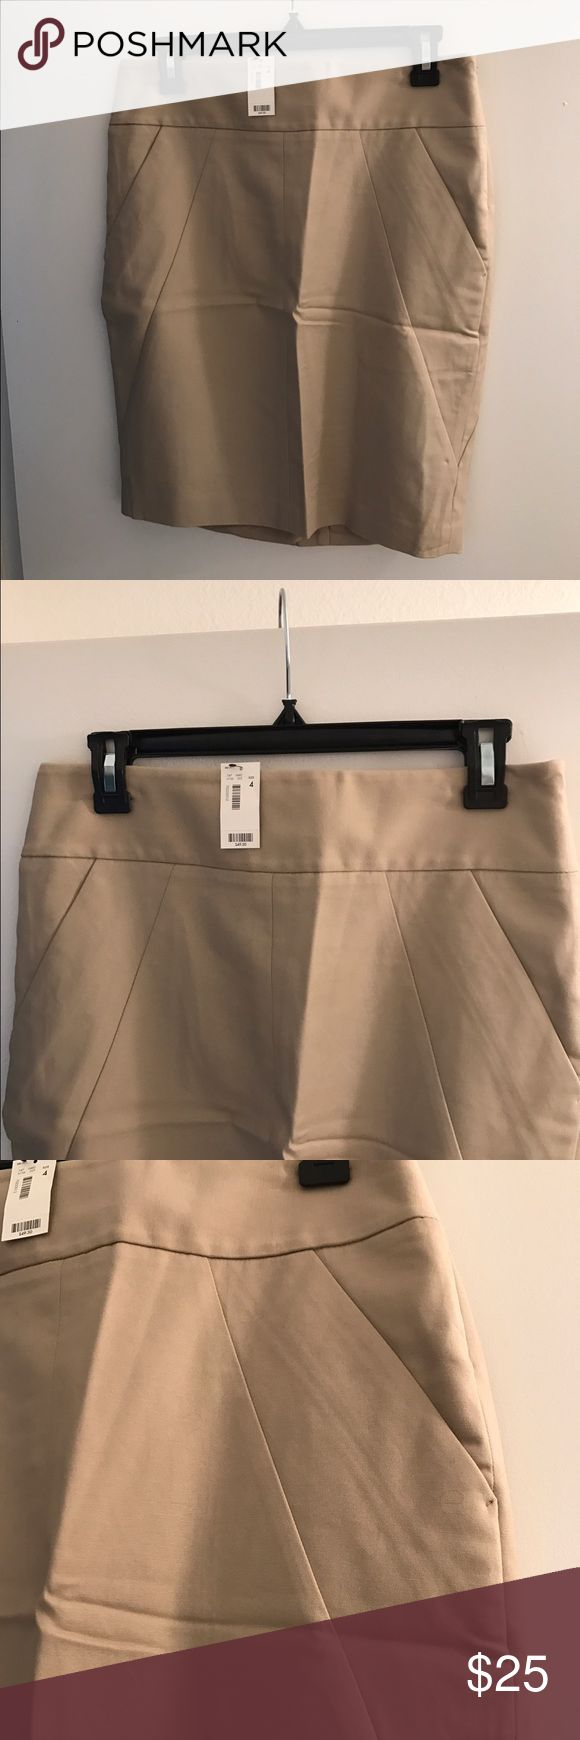 Khaki pencil skirt from The Limited, NWT. Khaki pencil from The Limited. Great basic with a few feminine pleats to highlight curves. No pockets for a smooth look. Lined. Size 4. Waist 15 inches, hips 18, bottom 17, length 21. New with tags. Outshell 98% cotton, 2% spandex, lining 100% poly. Smoke free home. The Limited Skirts Pencil